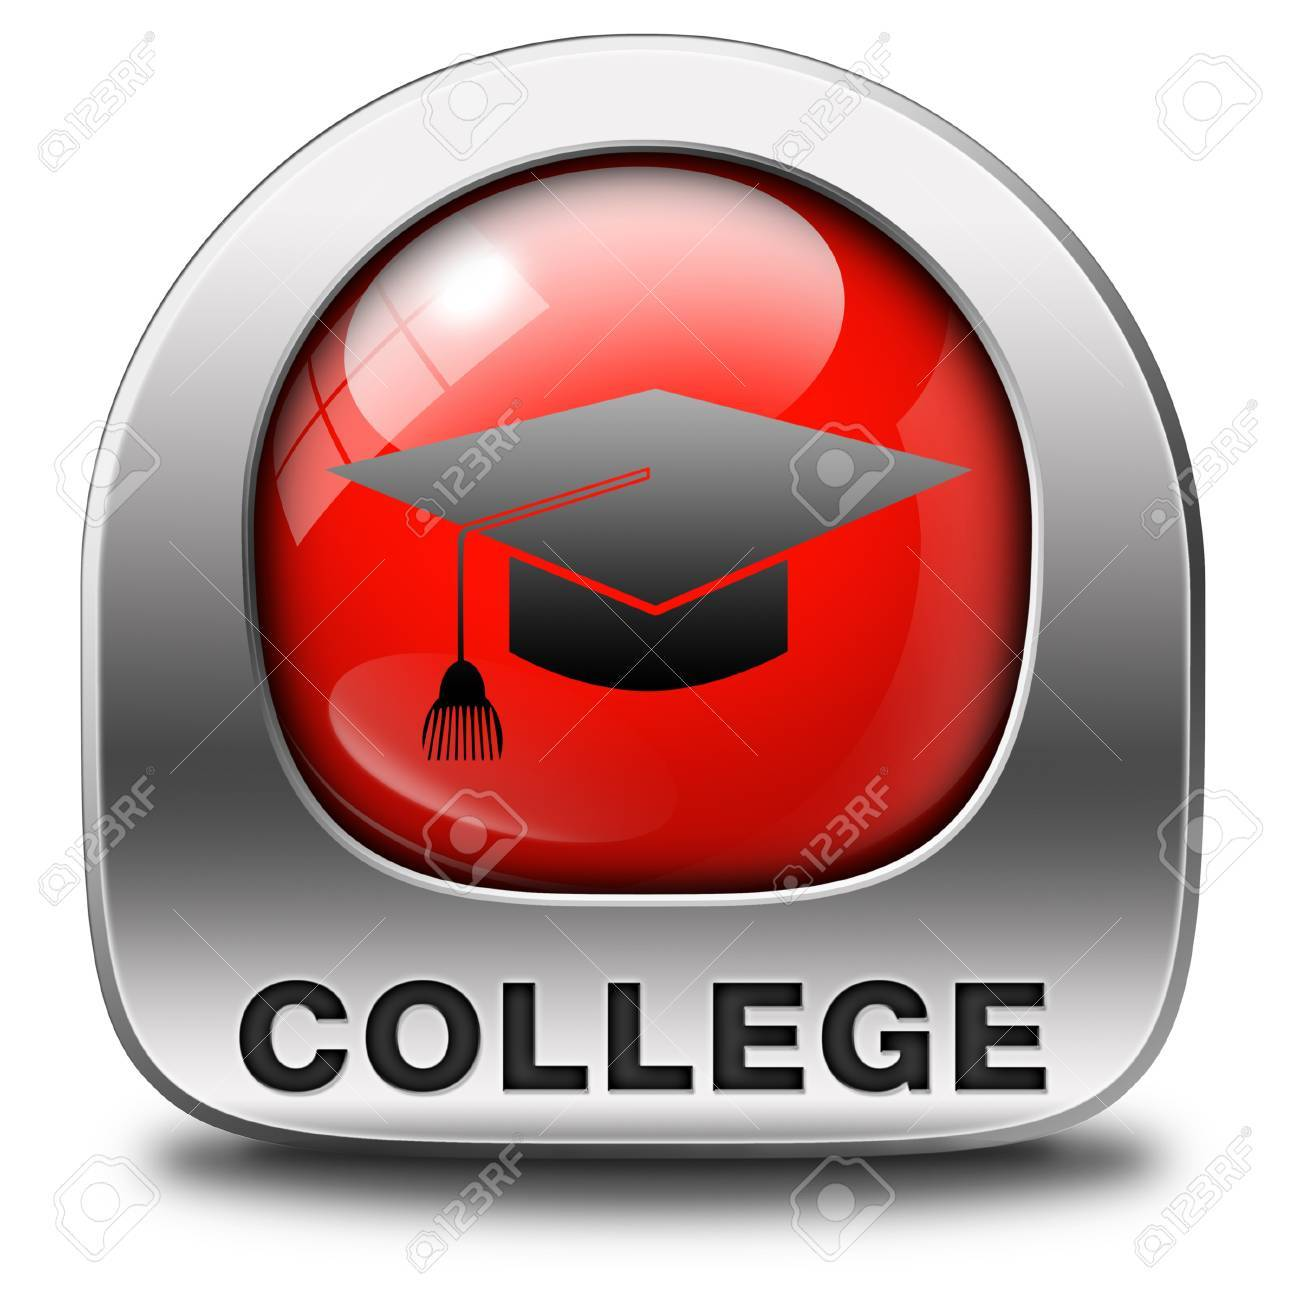 what are the requirments to get into a good college what are the requirments to get into a good college